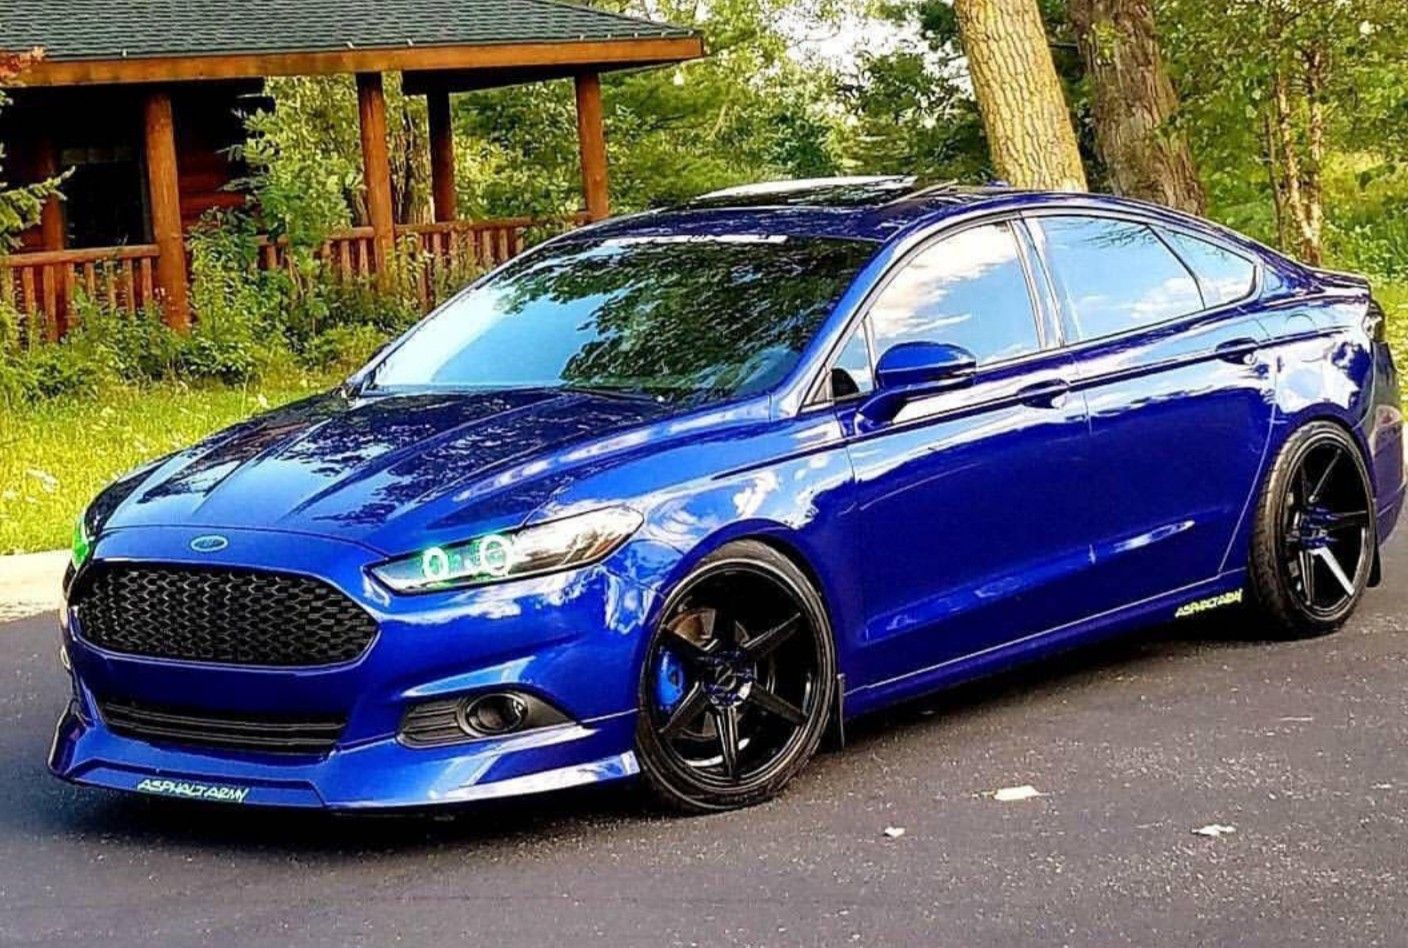 Pin by ViirusOne on Fox body mustang in 2020 Ford fusion